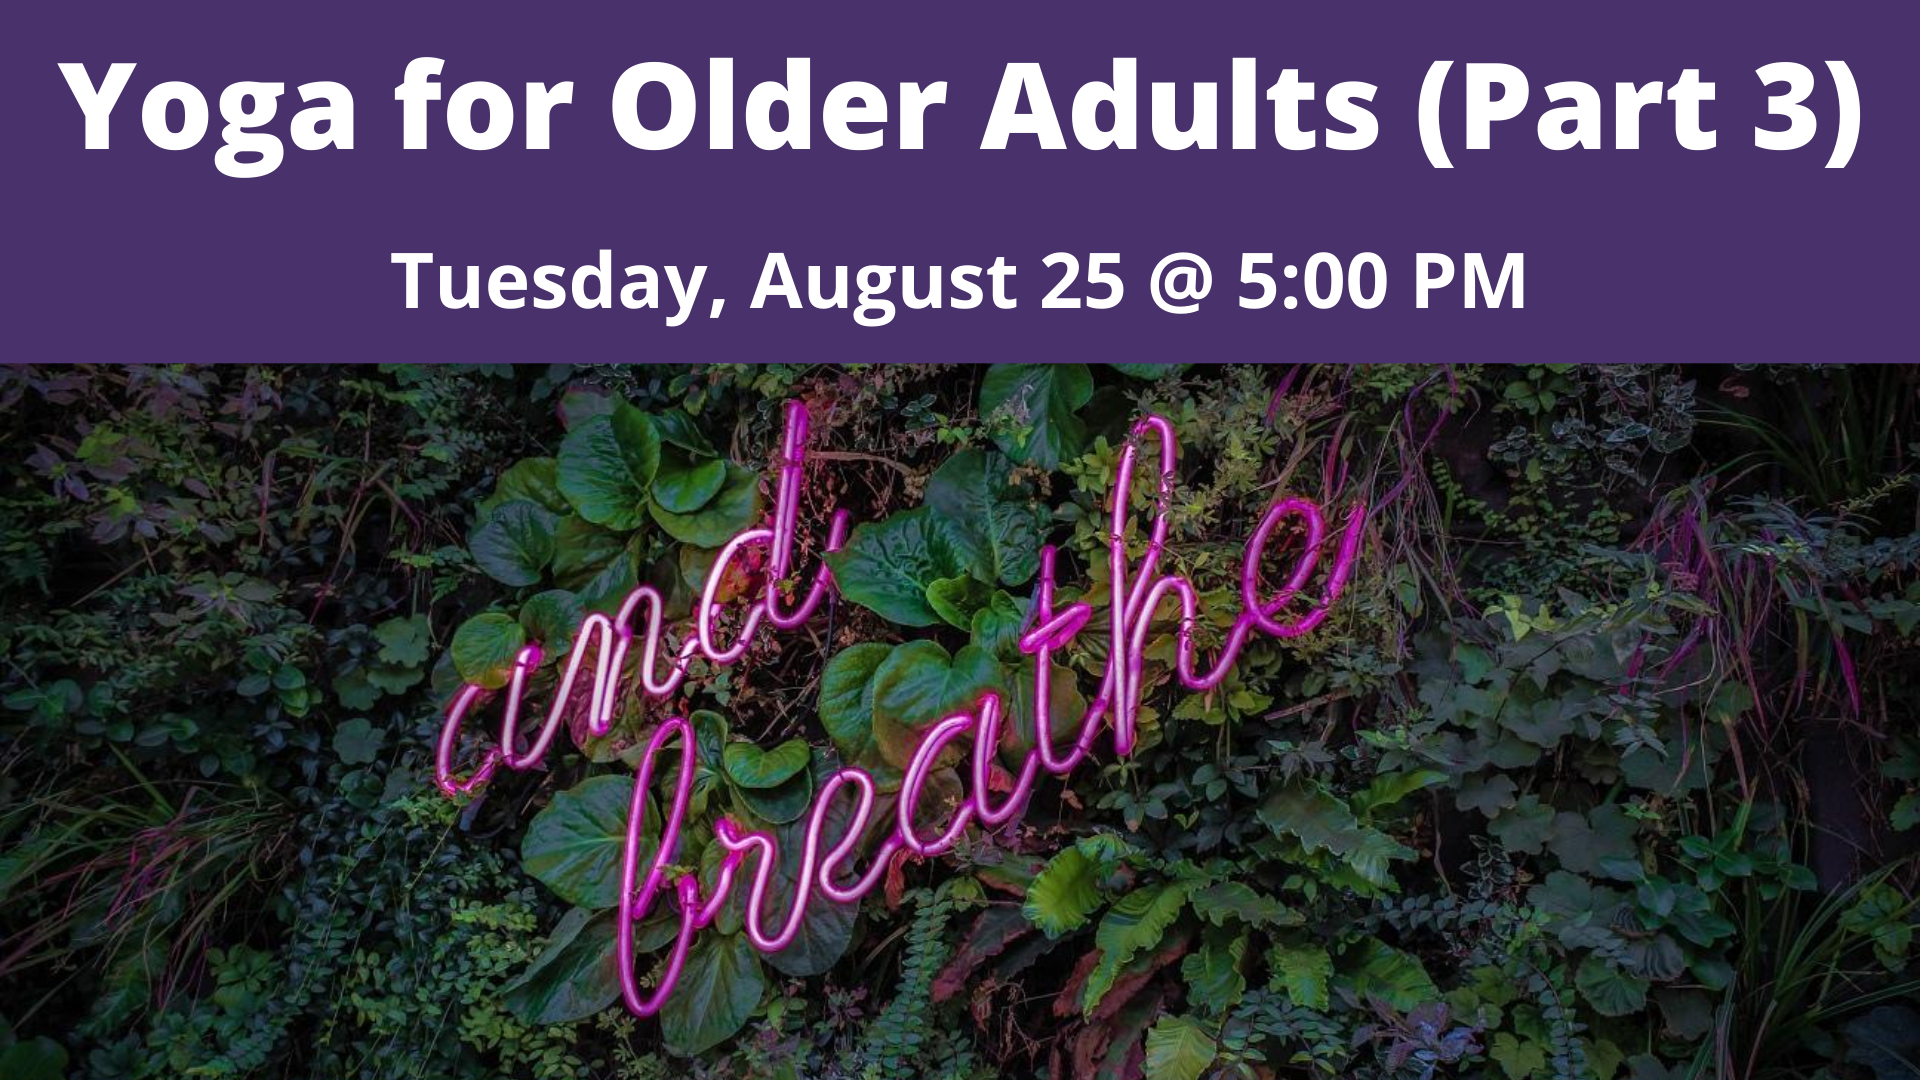 Yoga for Older Adults (Part 3)